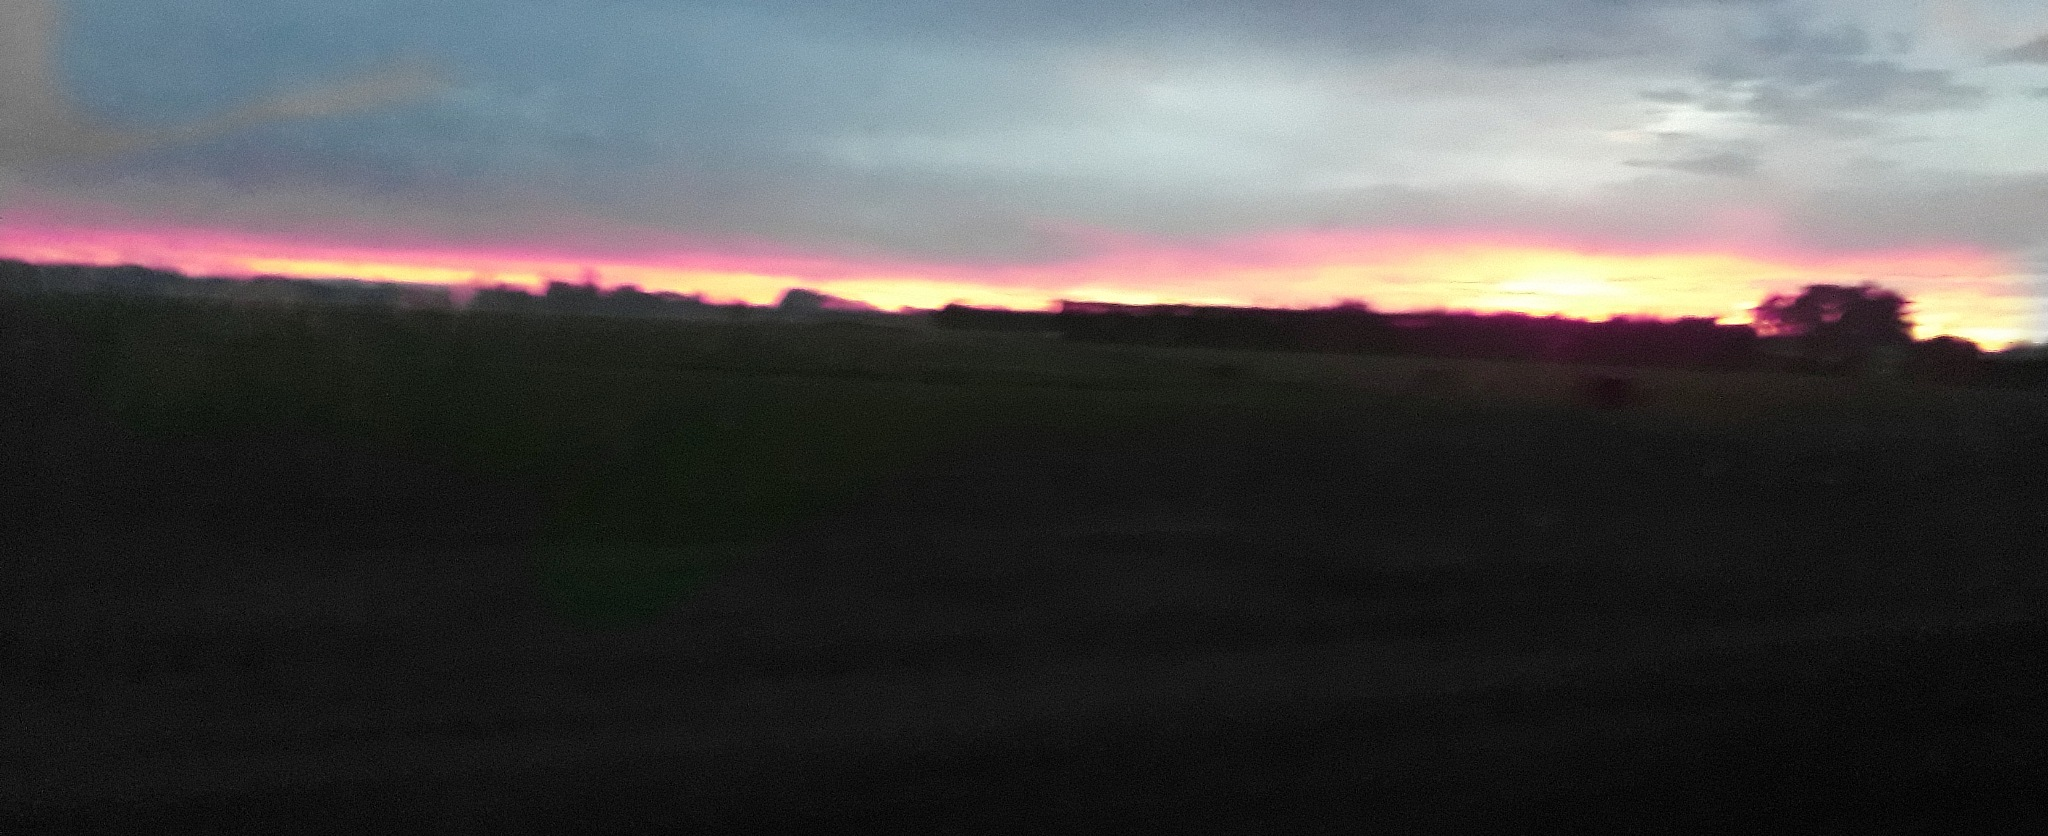 Red sky on way to school by Chanel Hall